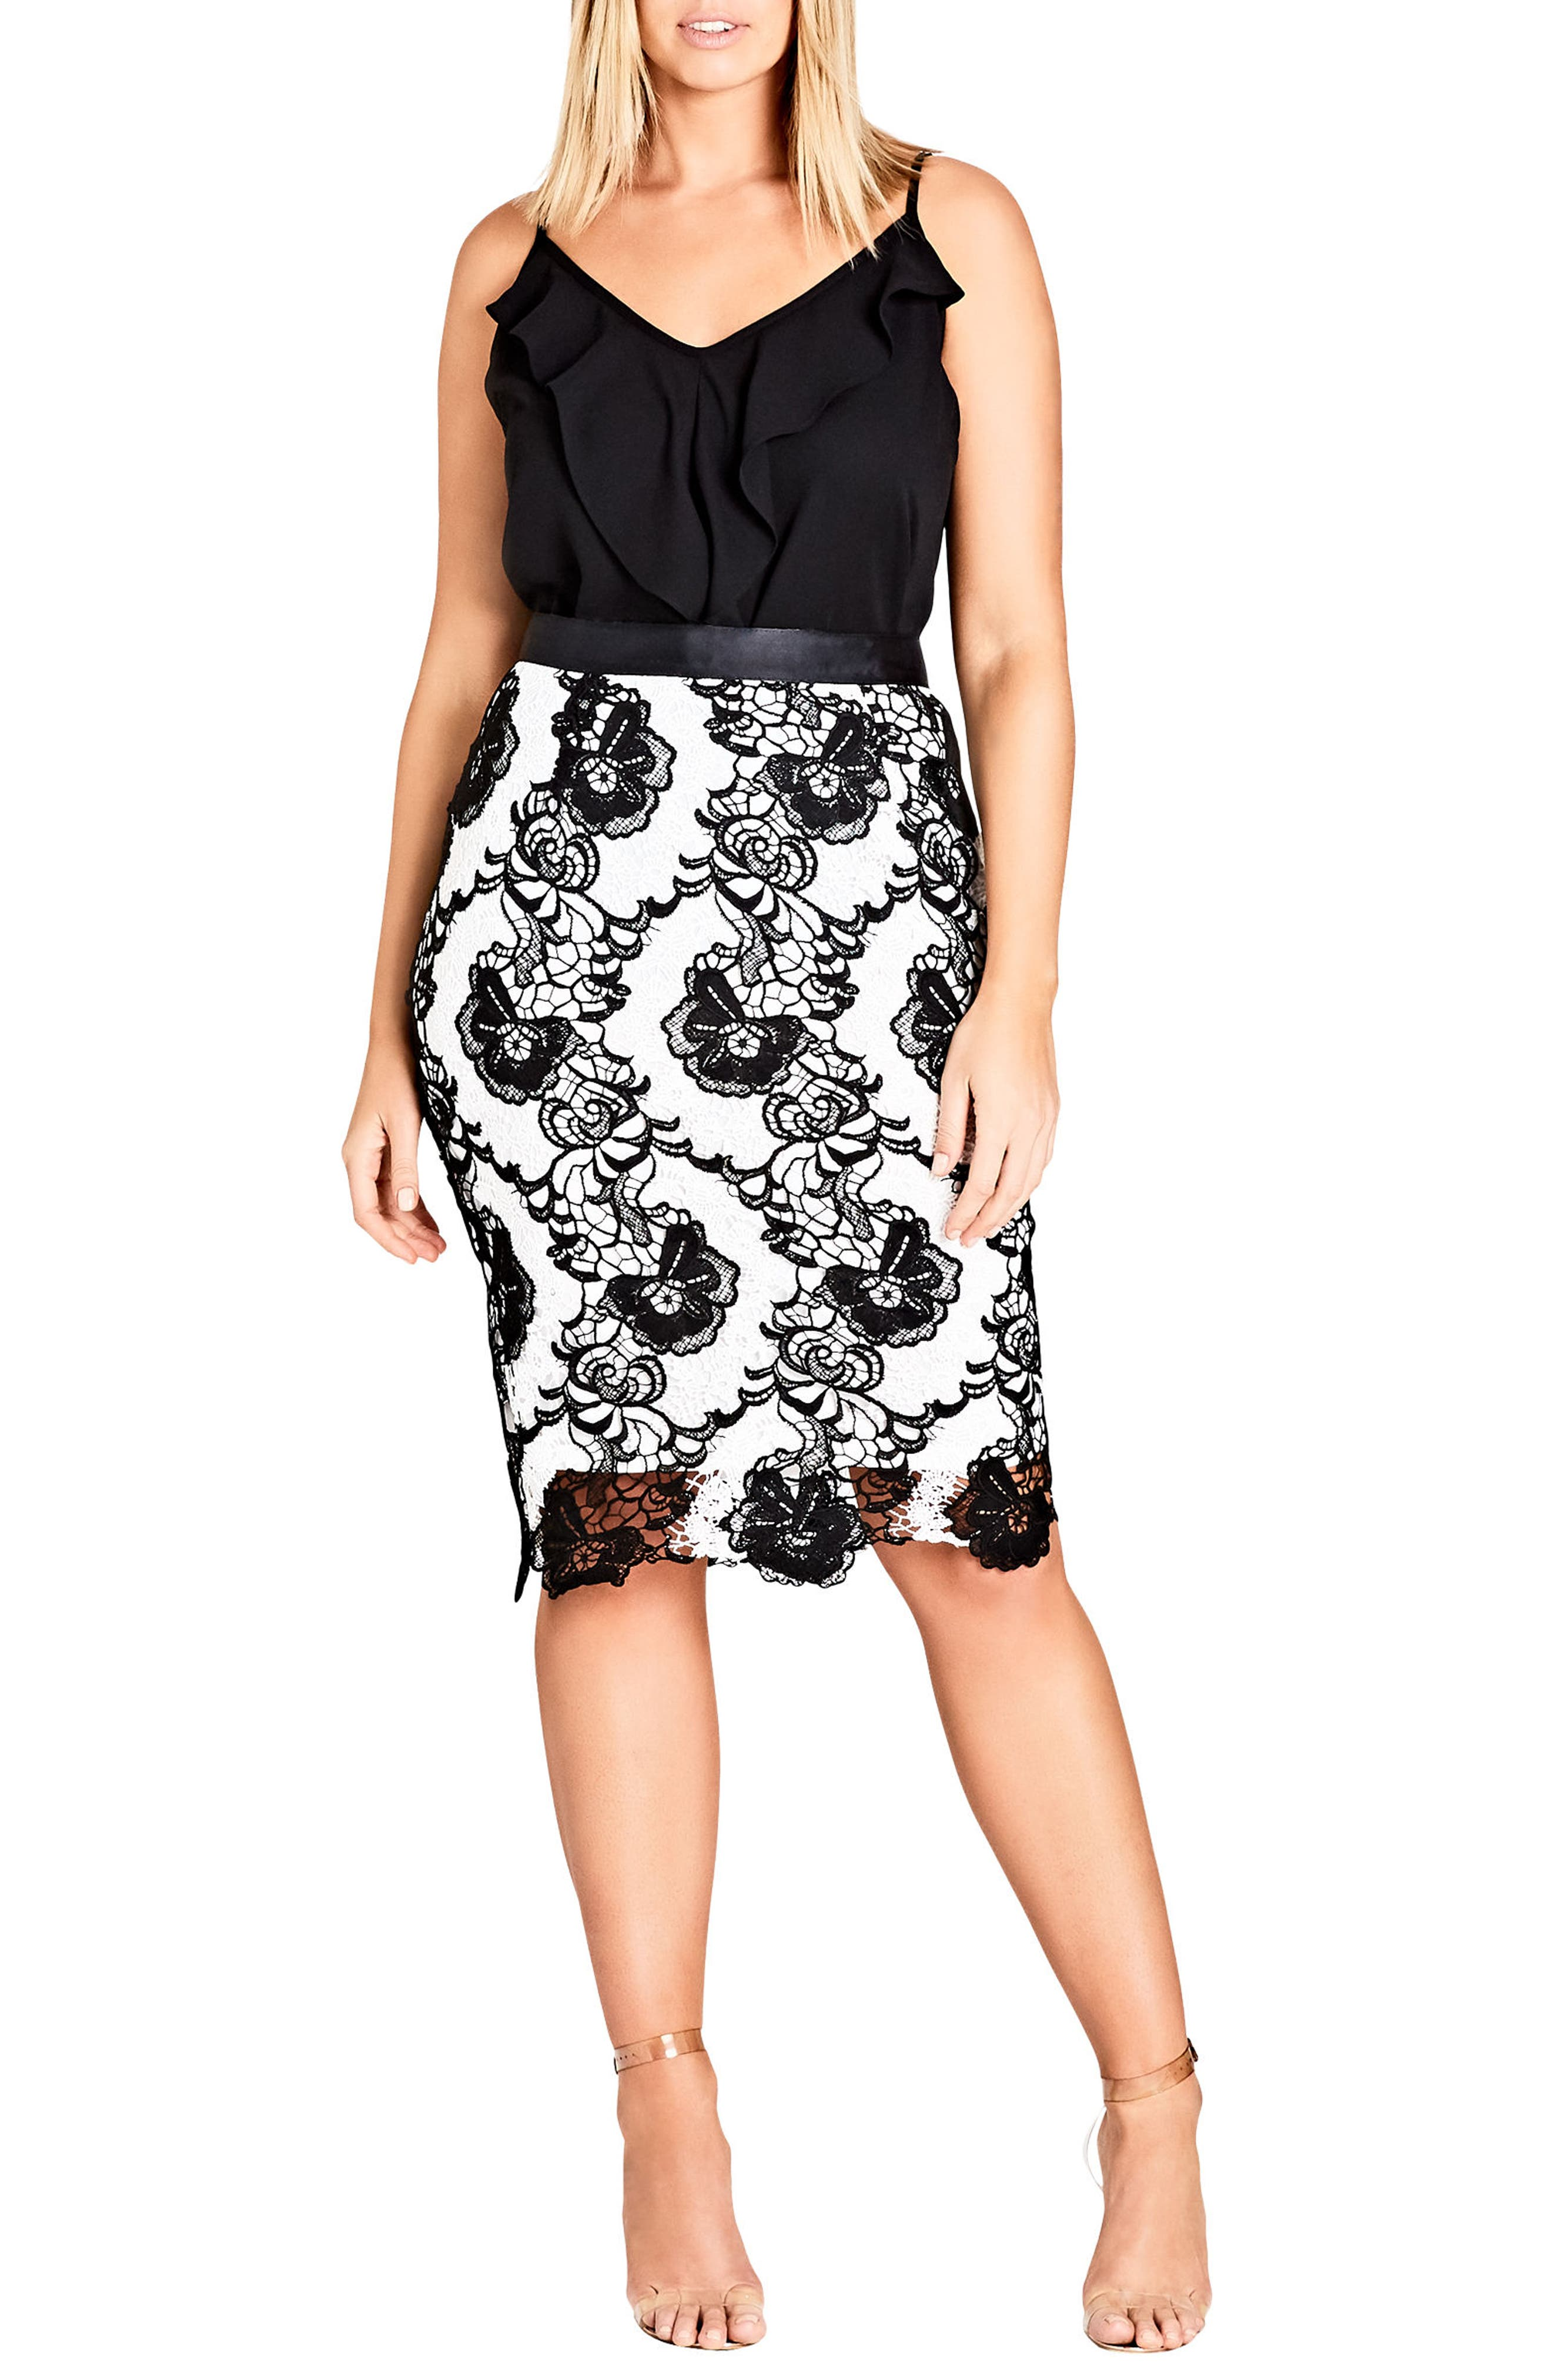 Cha Cha Floral Embroidered Skirt,                         Main,                         color, Ivory